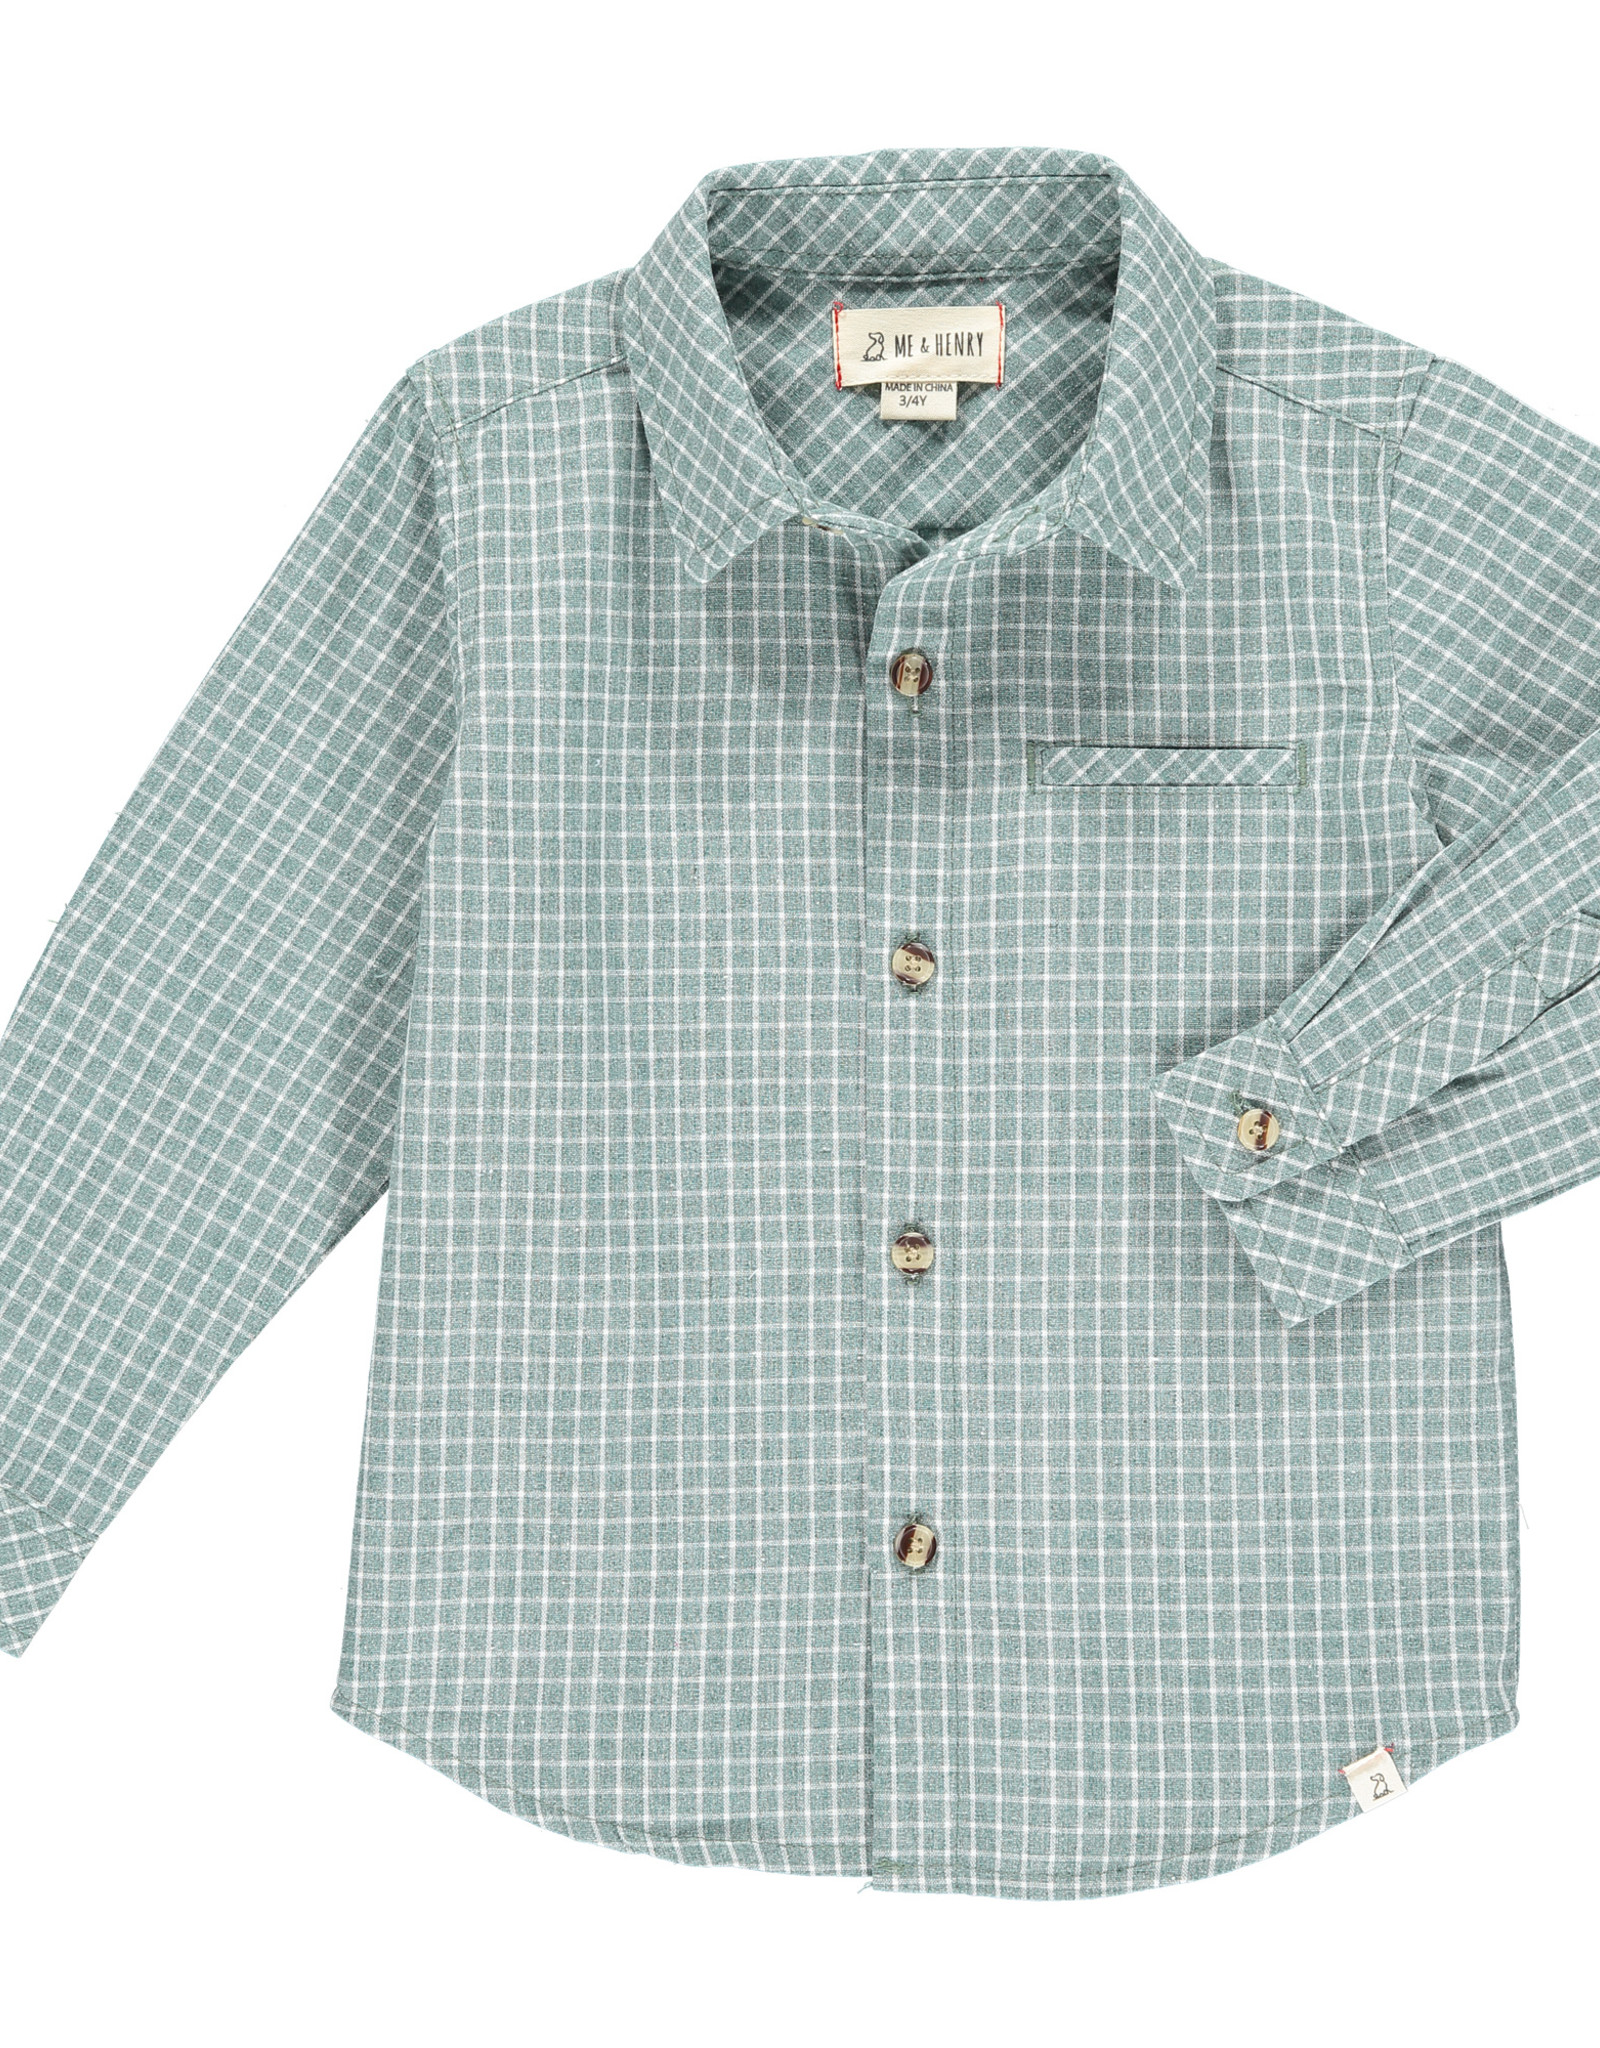 Me & Henry l/s button down- green grid